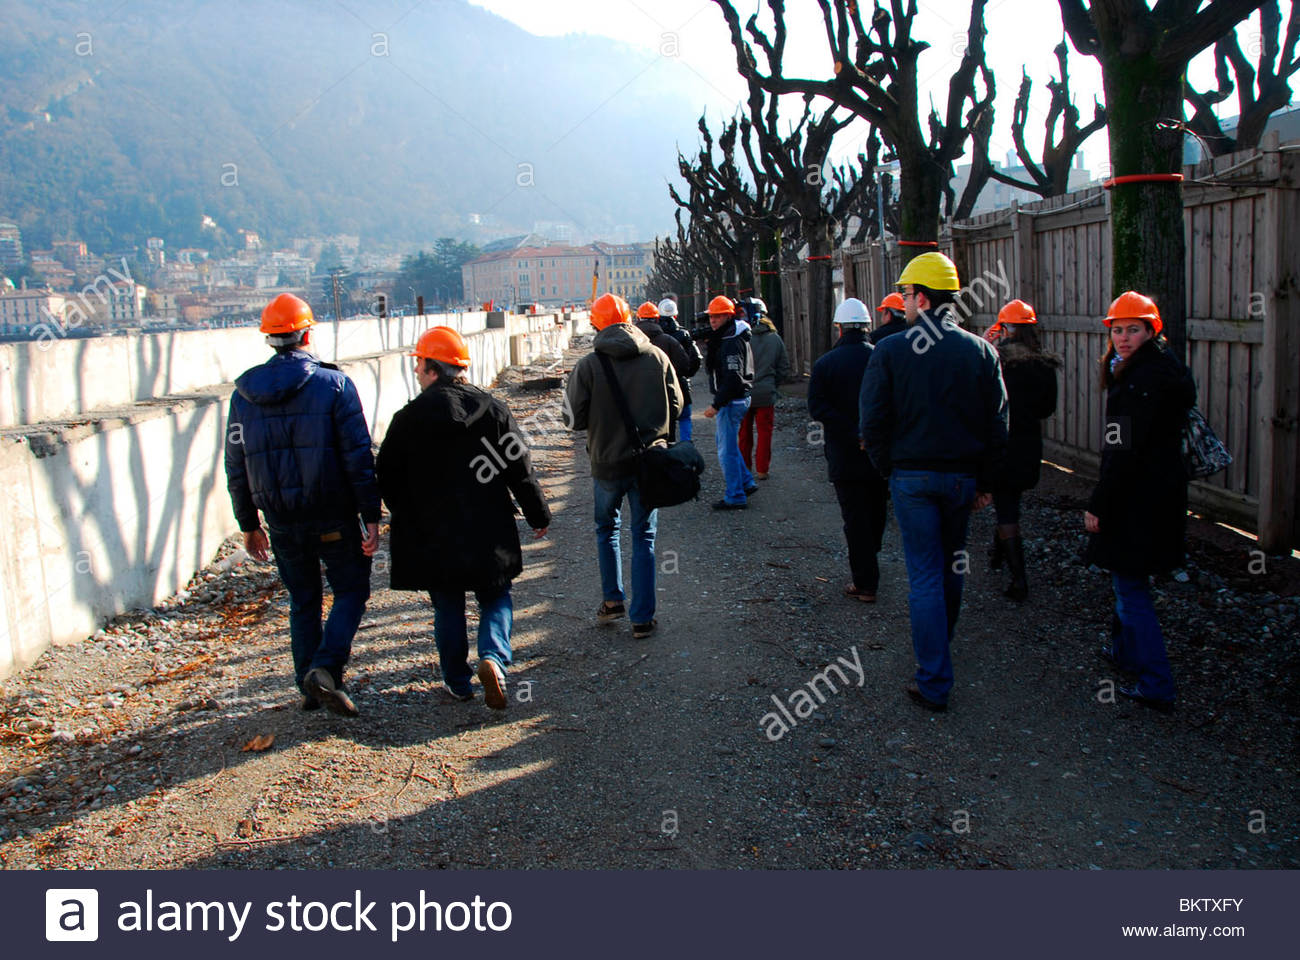 journalists during  the discouragement of the wall on along Como lake,lombardia,italy - Stock Image